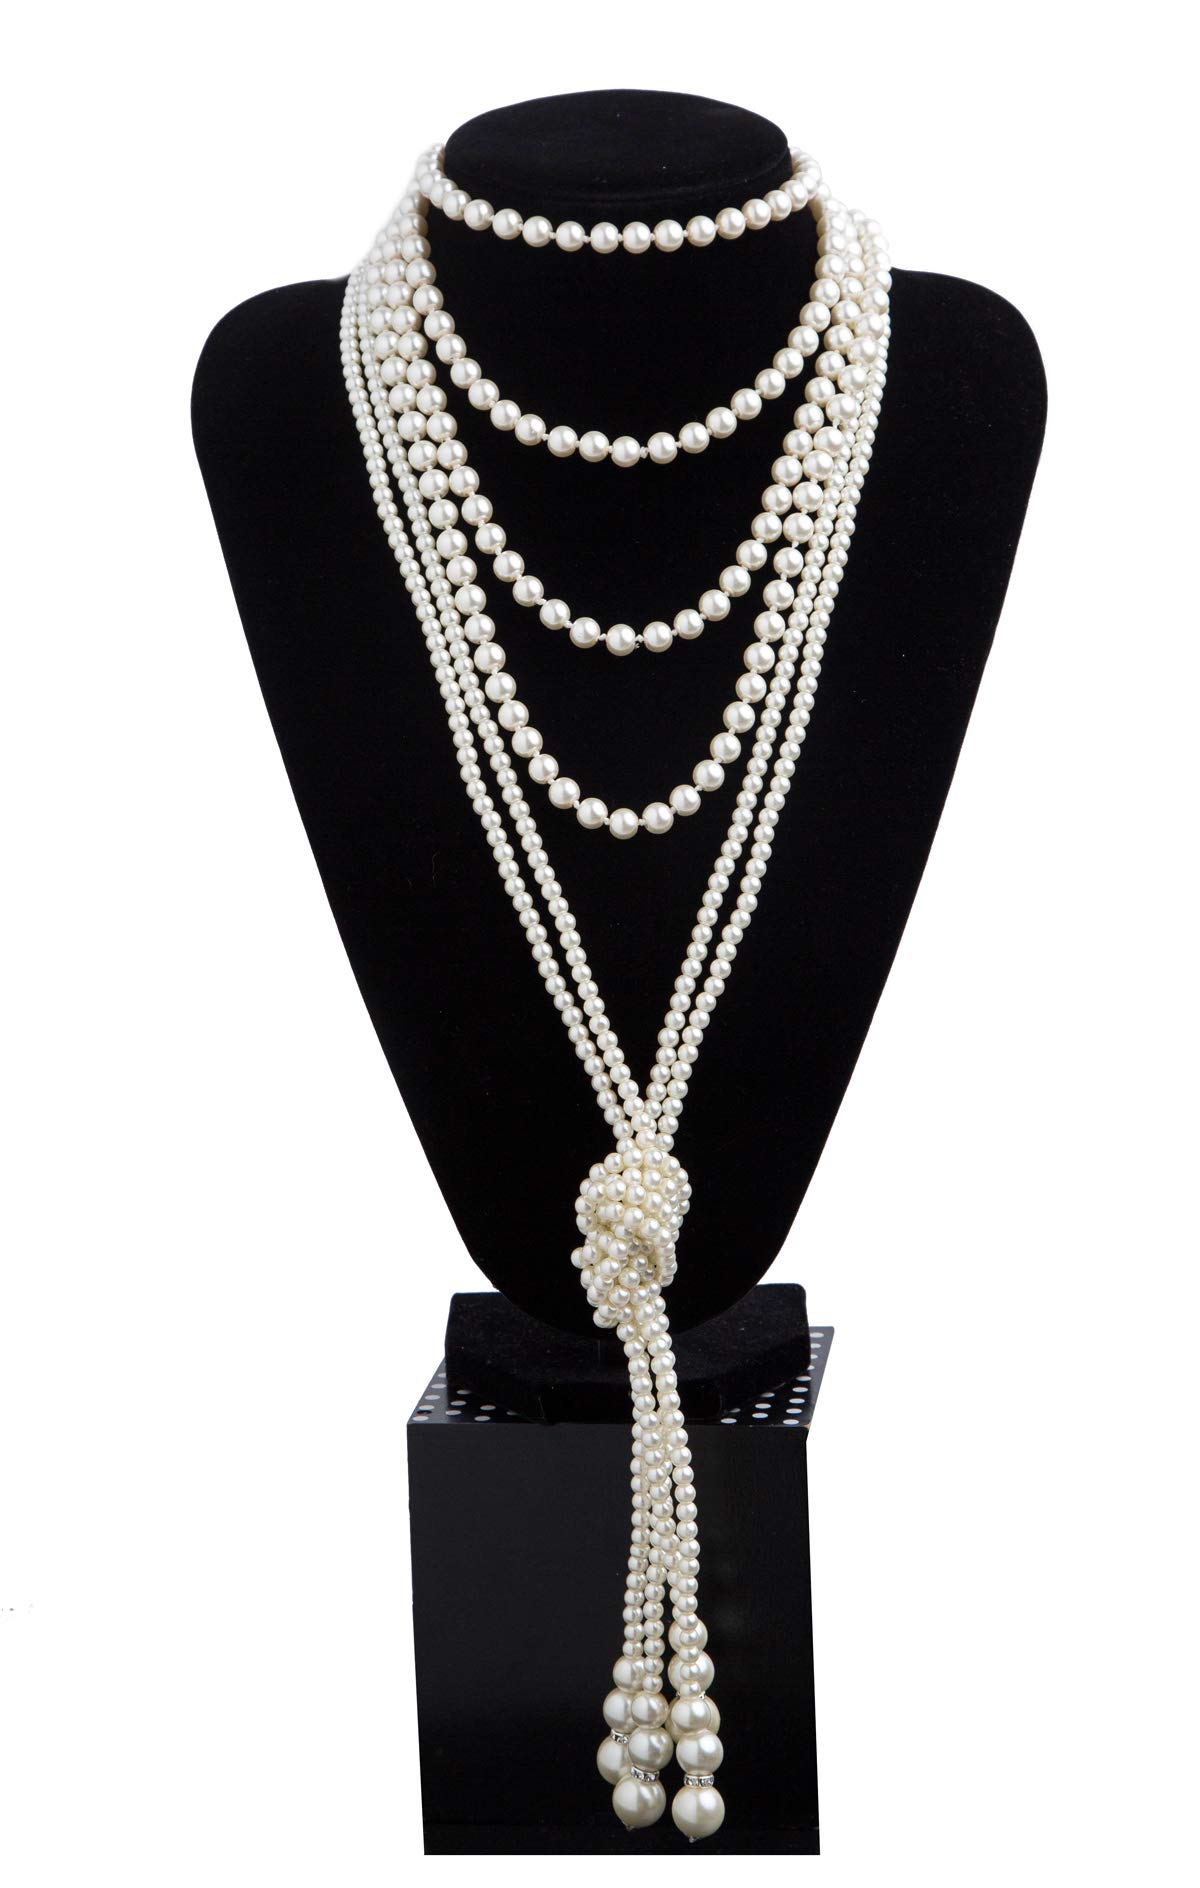 1920s Pearls Necklace Fashion Faux Pearls Gatsby Accessories Vintage Costume Jewelry Cream Long Necklace for Women (B-Knot Pearl Necklace2 + 59'' Necklace1-White)